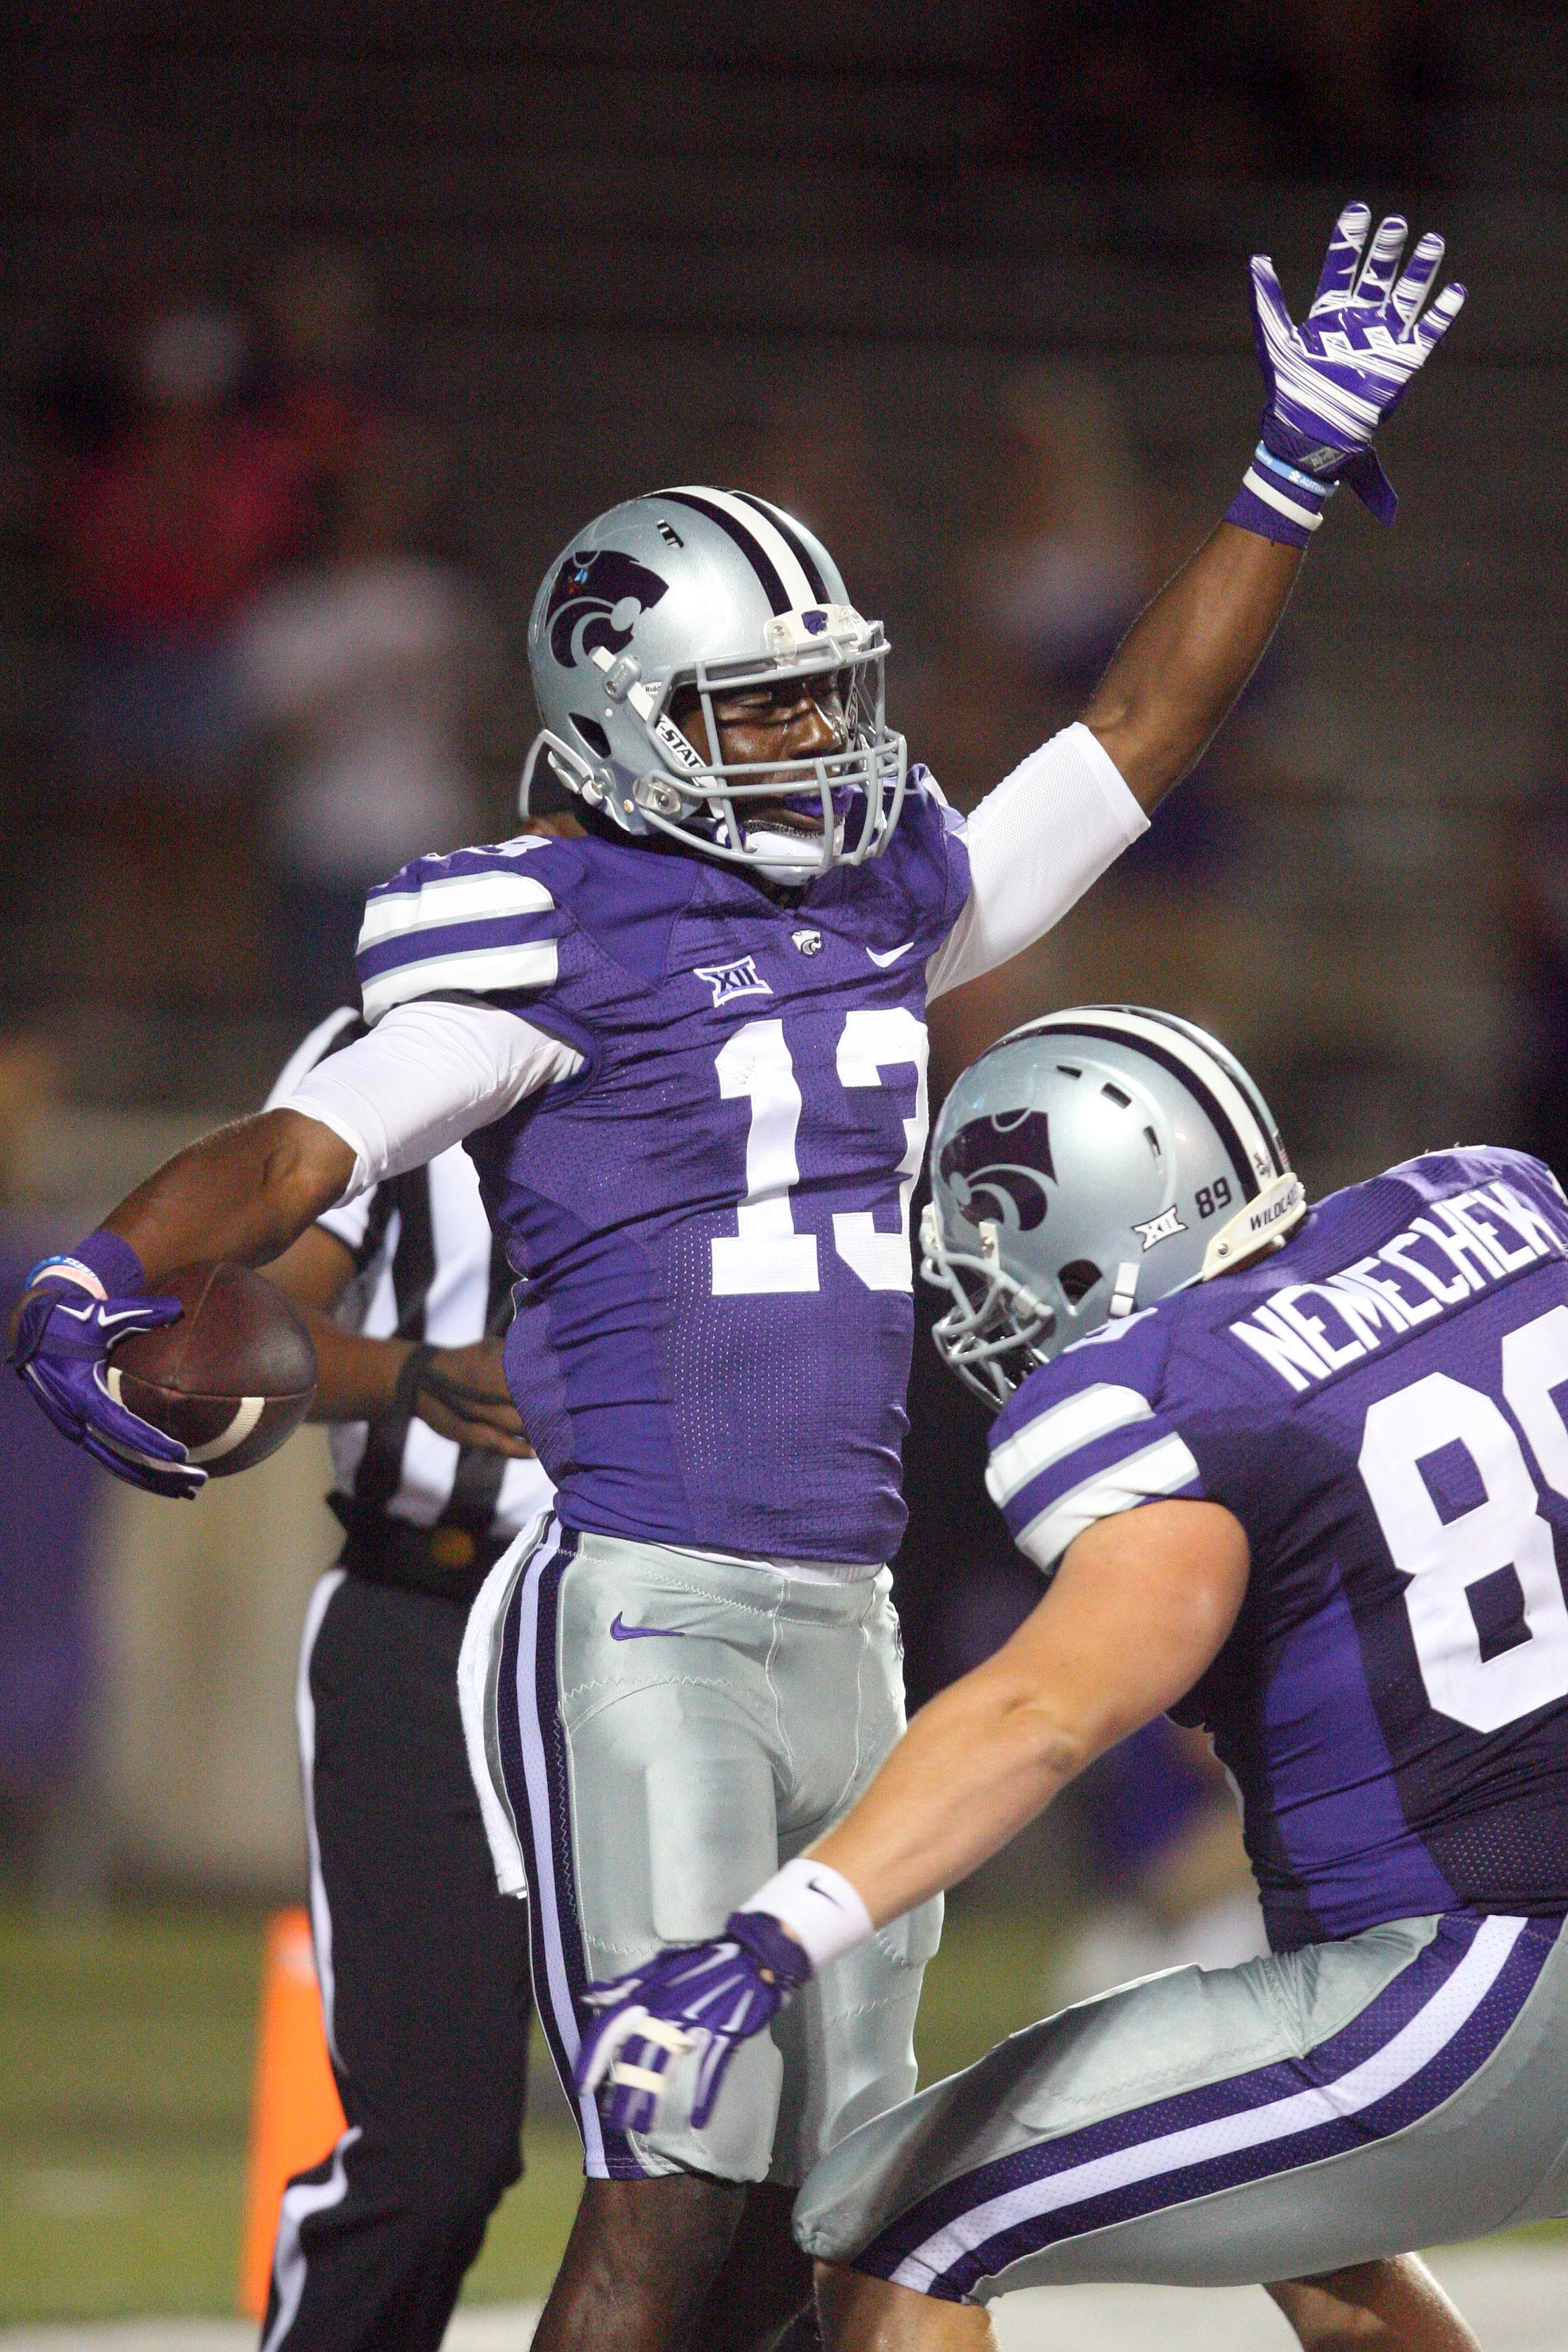 Unless something changes drastically this season or next, this touchdown against Stephen F. Austin might end up being the high point of Steven West's career.